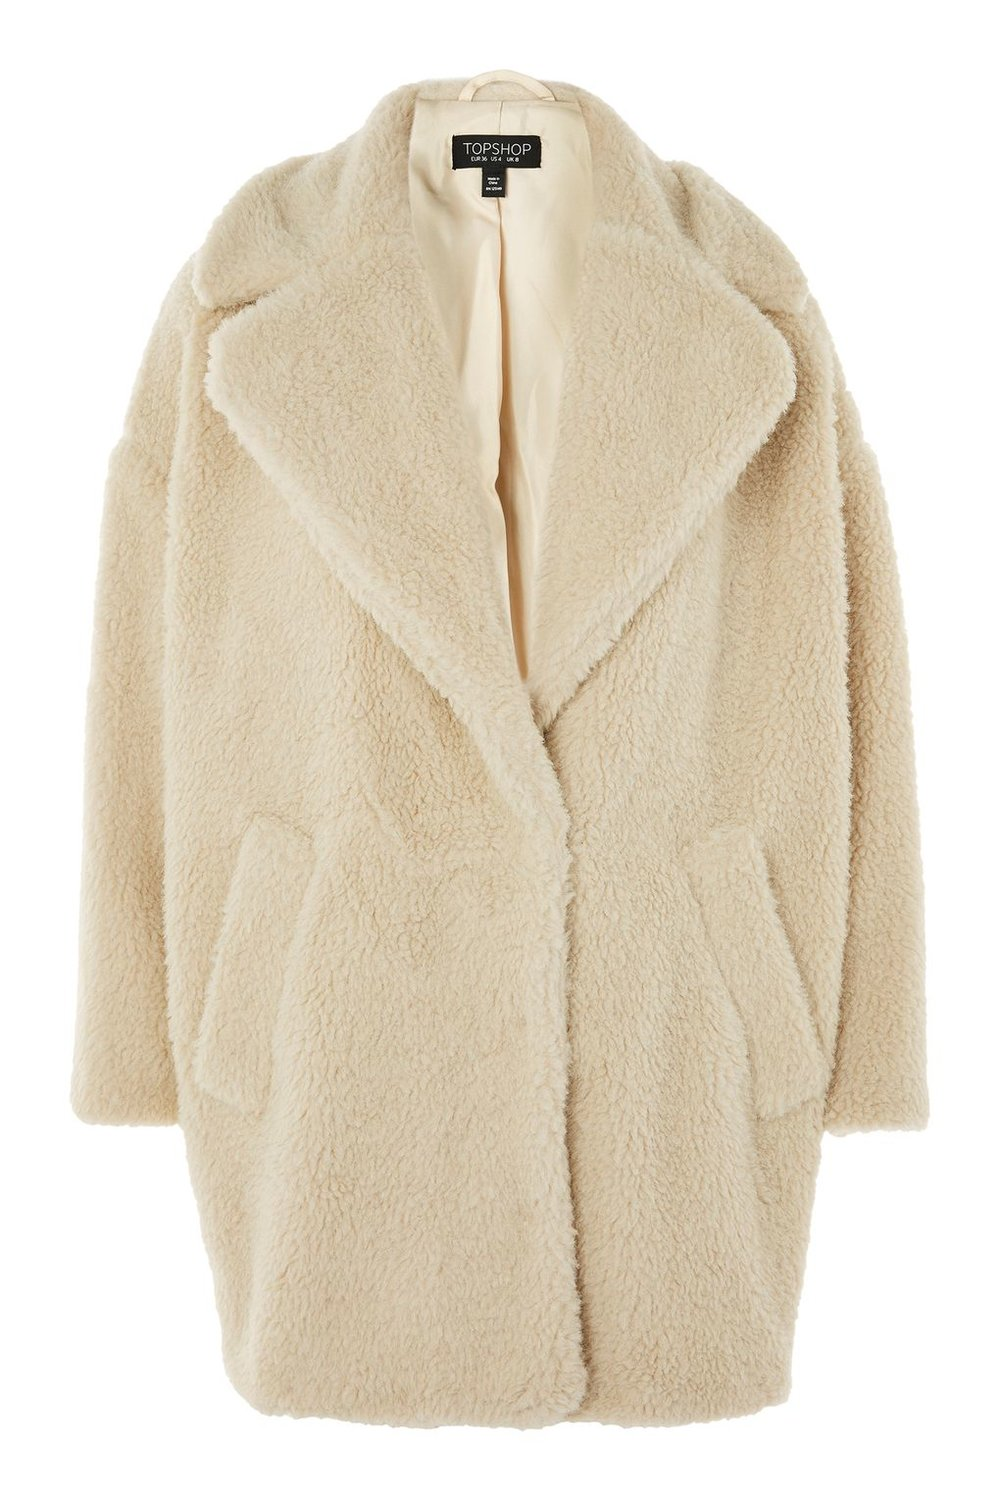 Topshop AW17 Borg Cocoon Coat